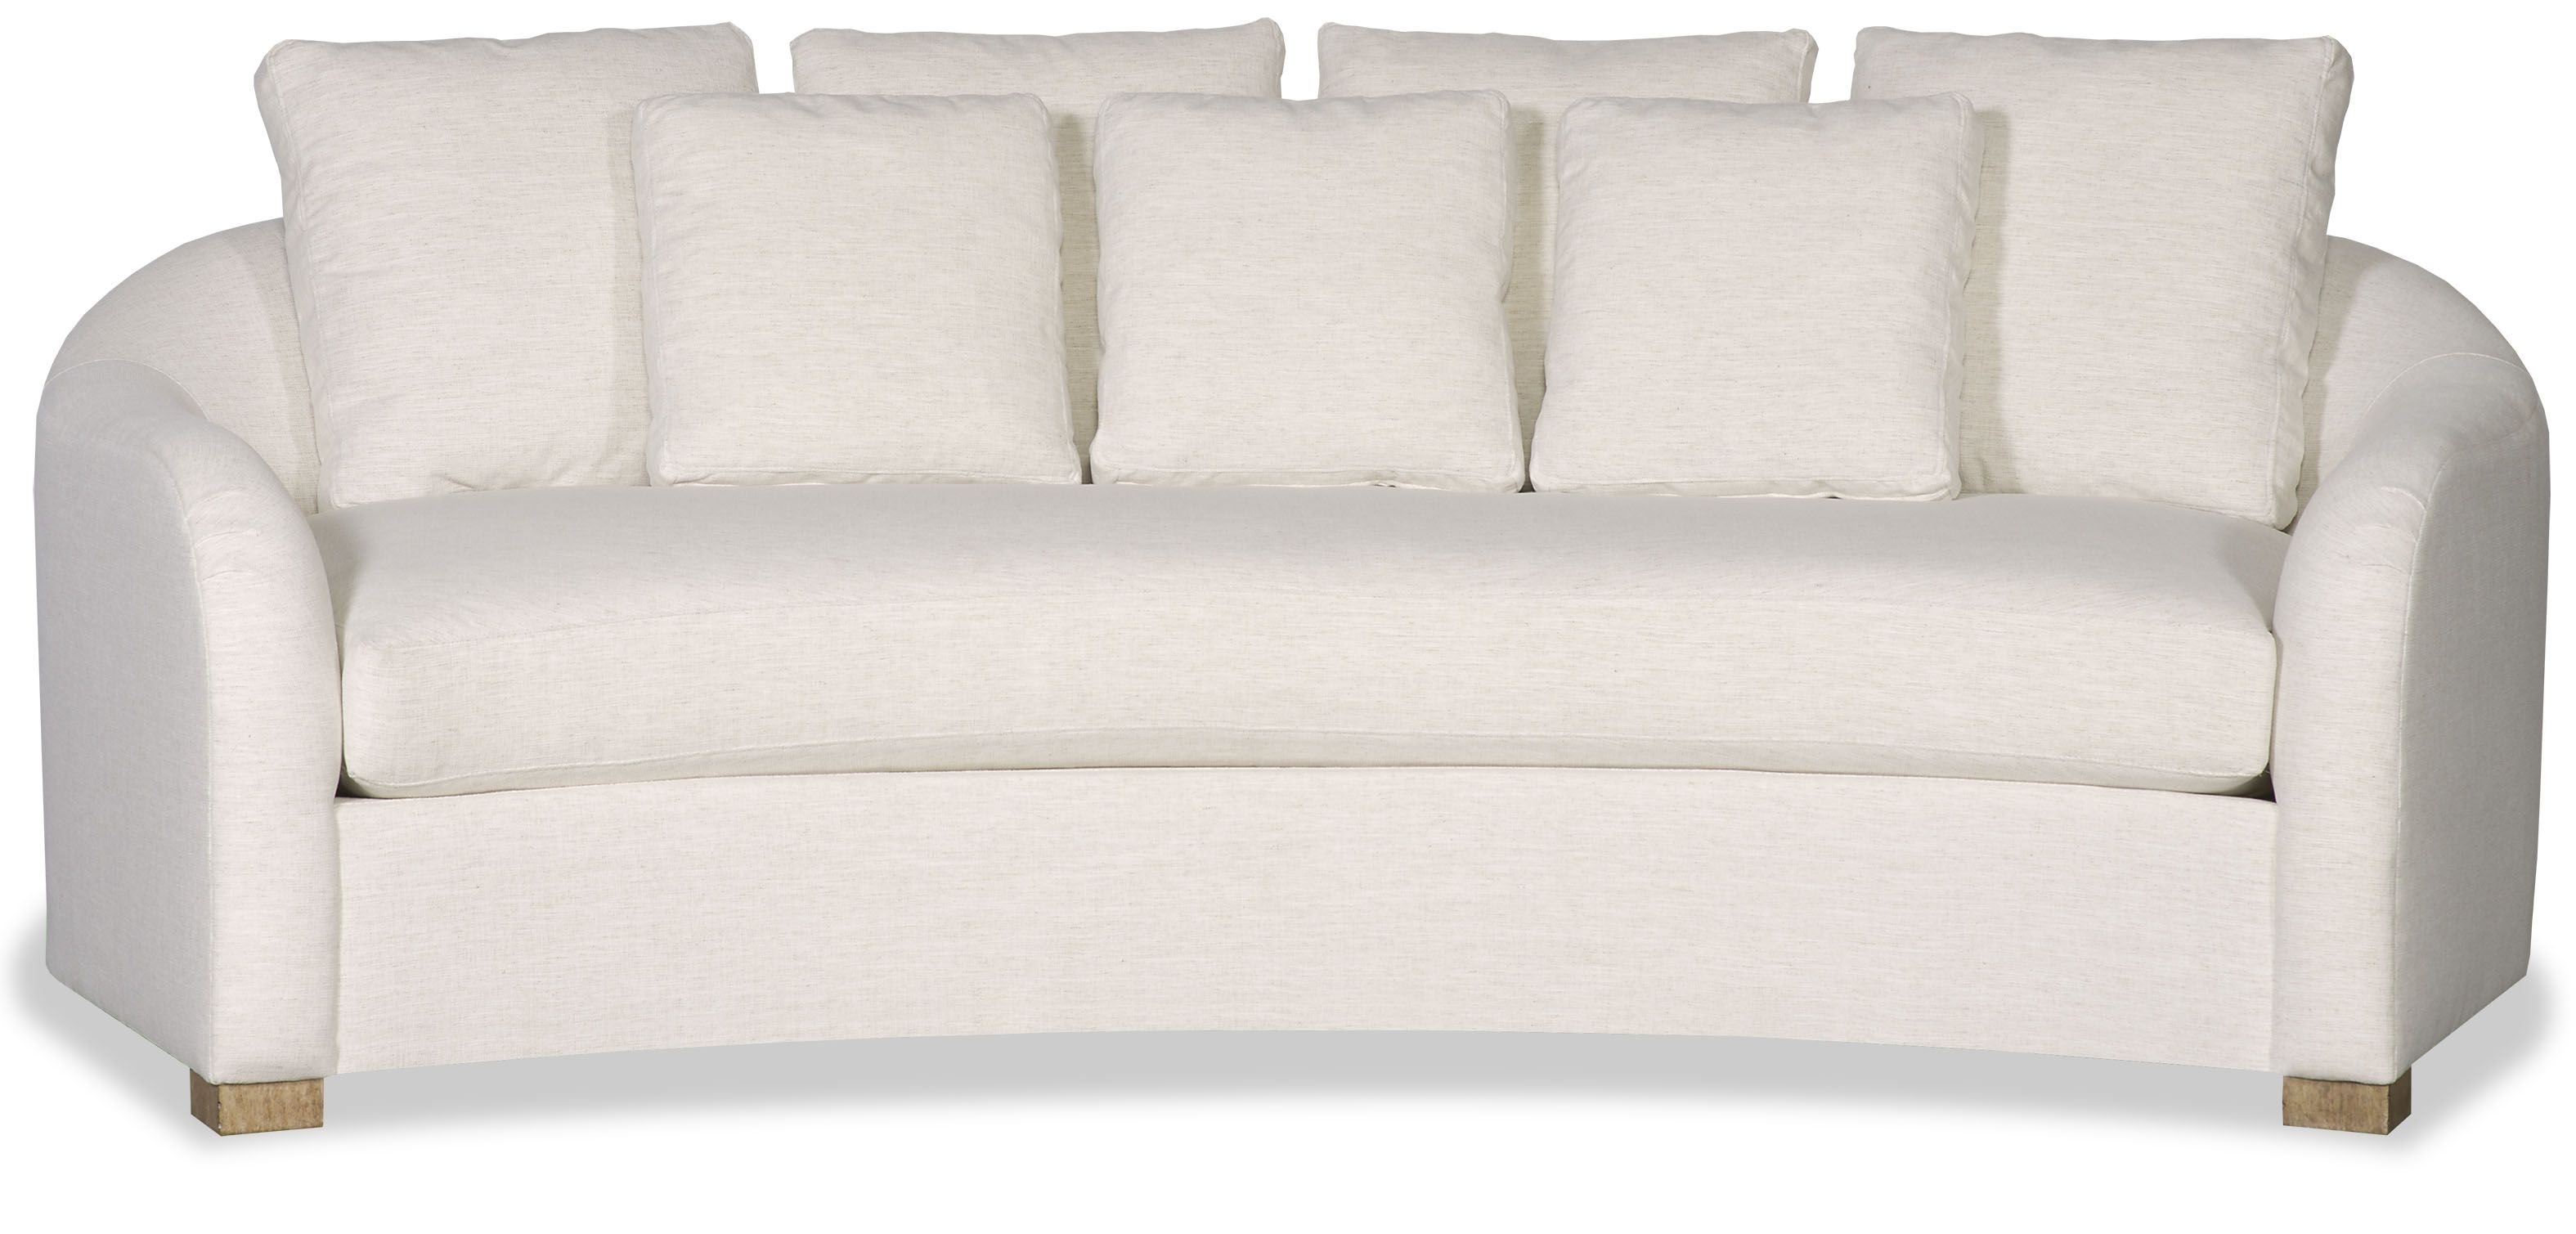 Move Over Boxy Sofas We Embrace Curves